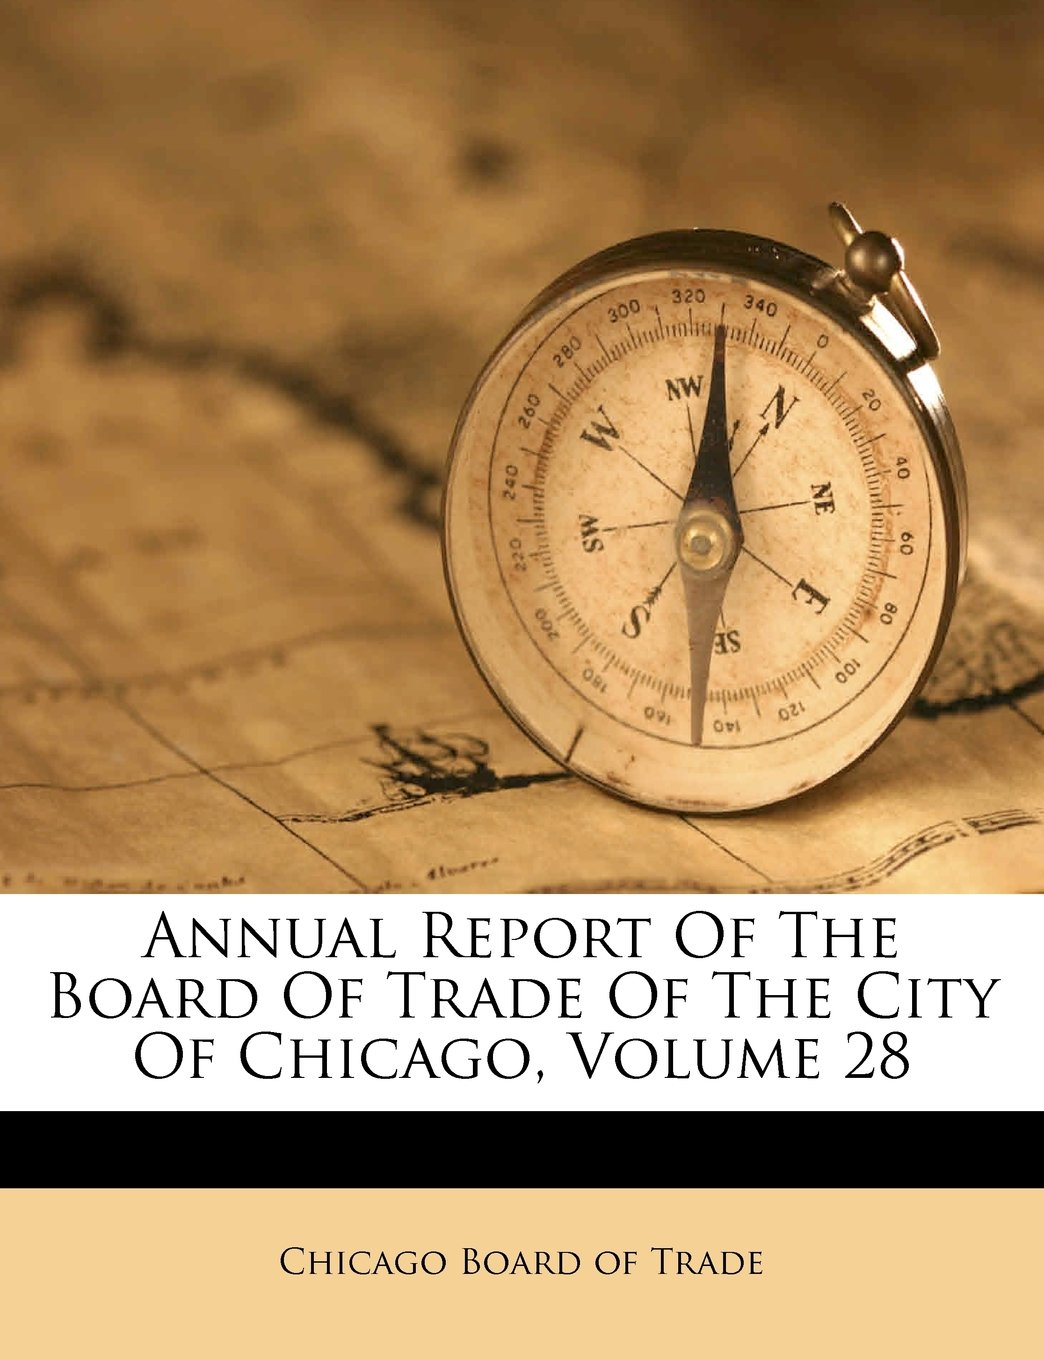 Annual Report Of The Board Of Trade Of The City Of Chicago, Volume 28 pdf